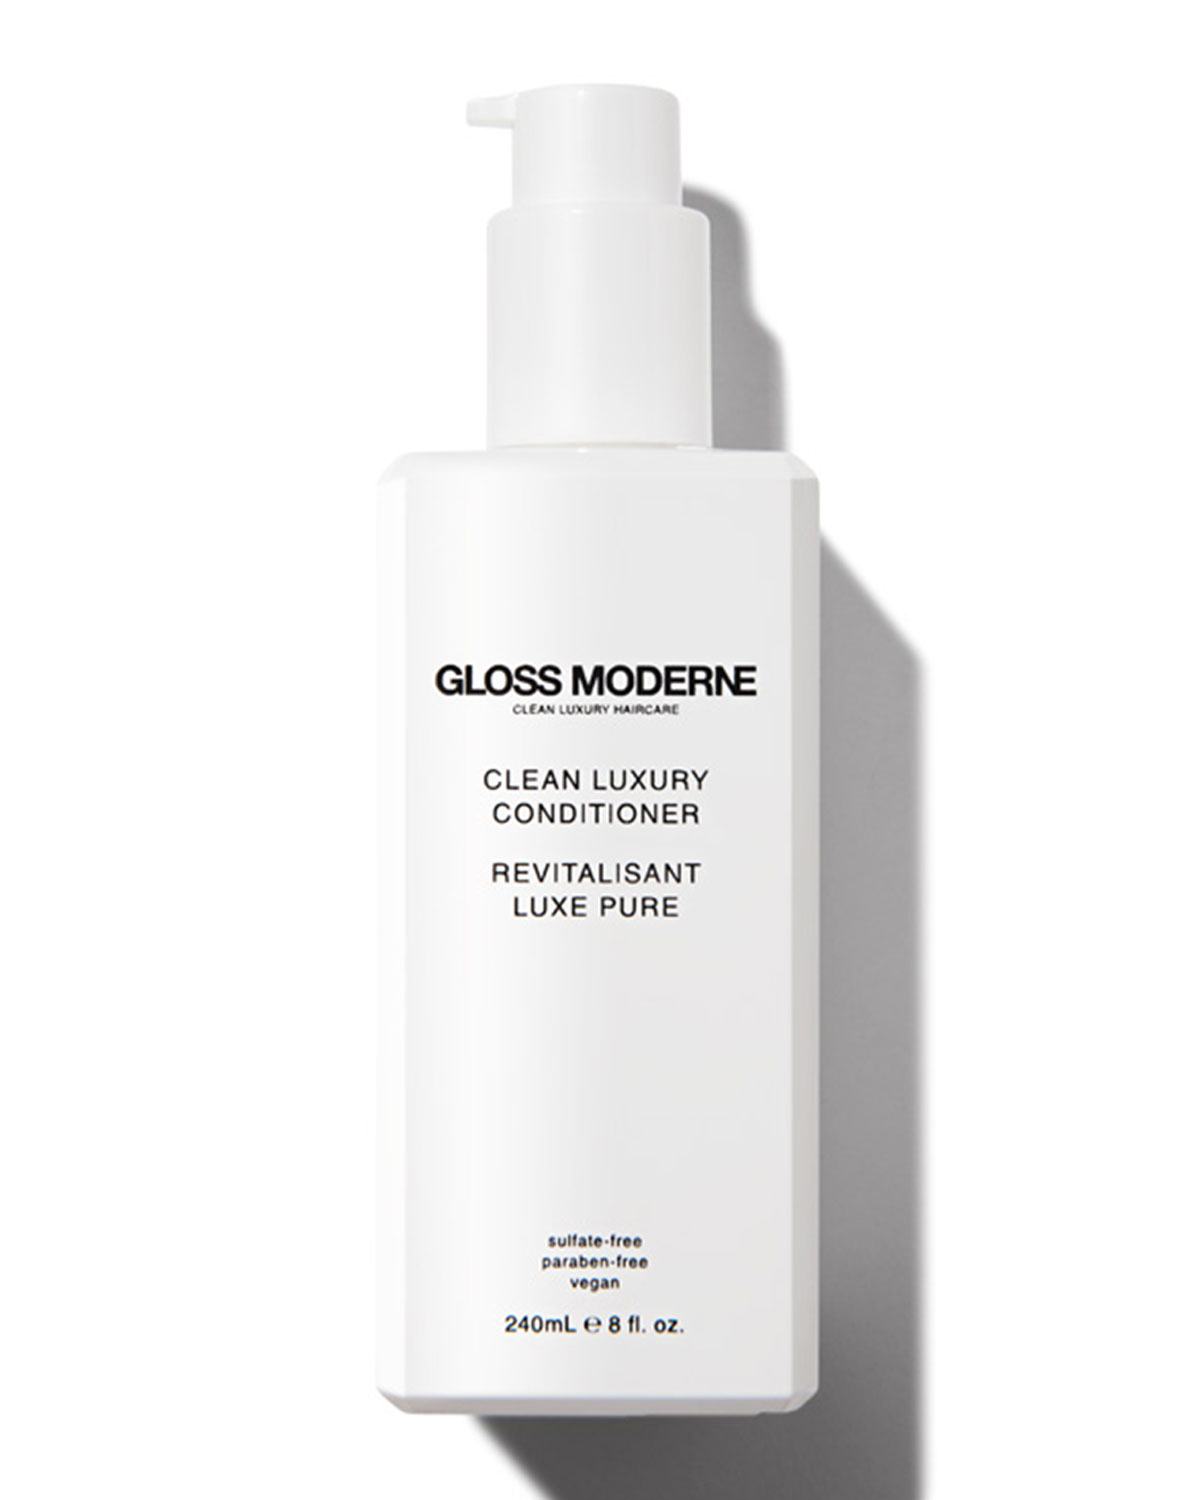 GLOSS MODERNE Clean Luxury Conditioner, 8.0 Oz./ 240 Ml